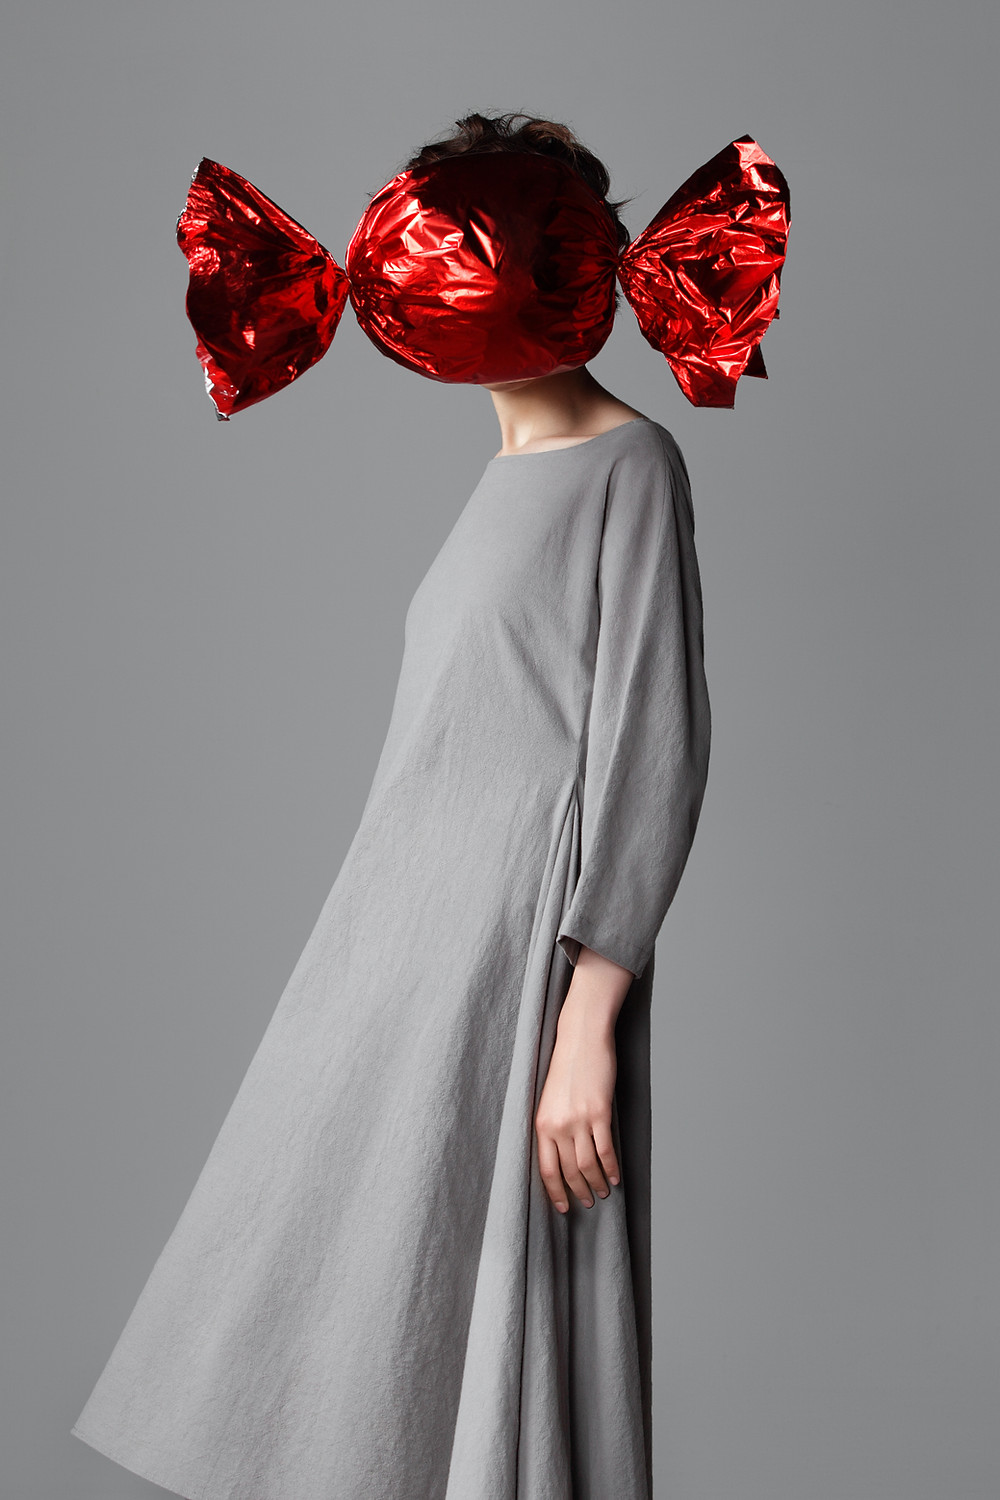 avante garde fashion art image of girl in grey dress with red candy head